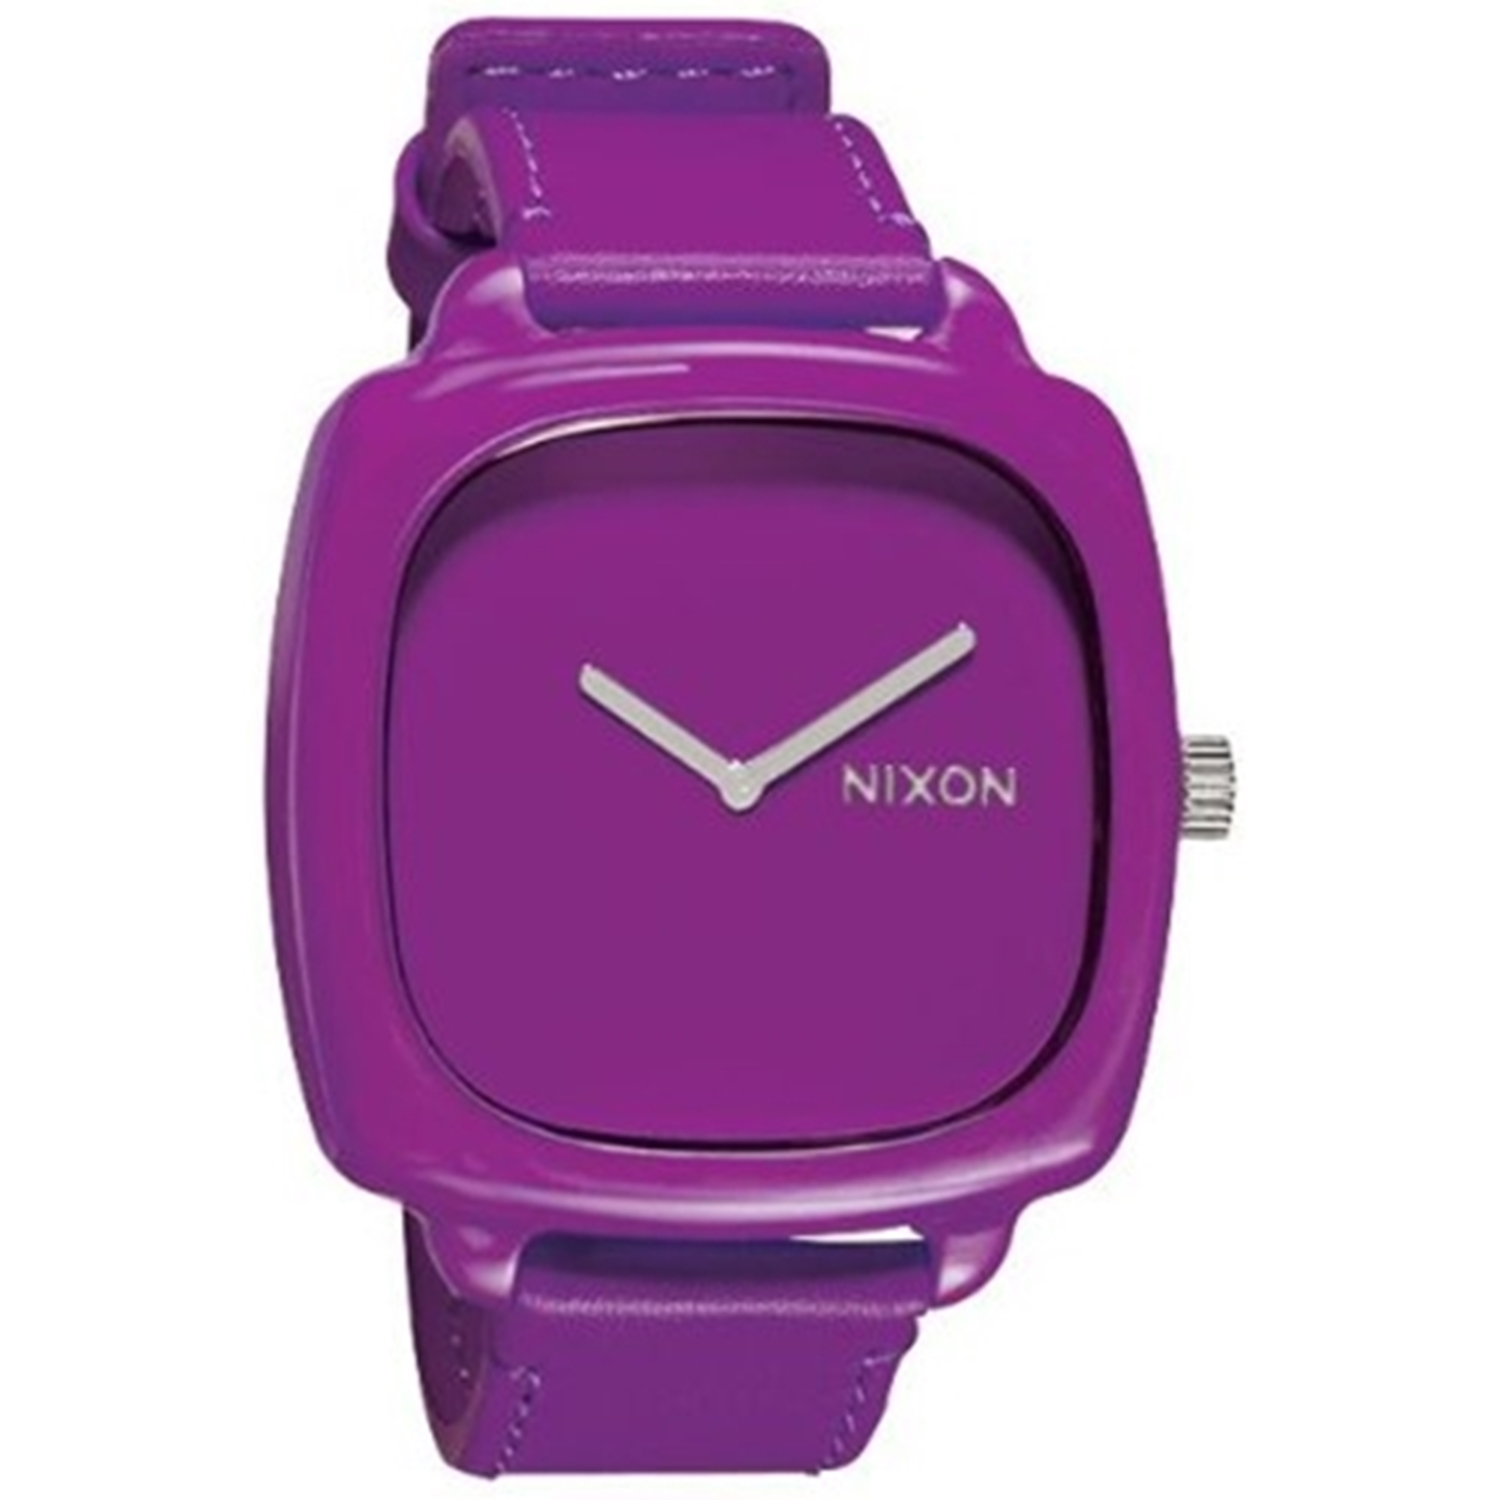 Nixon Women's Shutter A167698 Purple Leather Quartz Fashion Watch